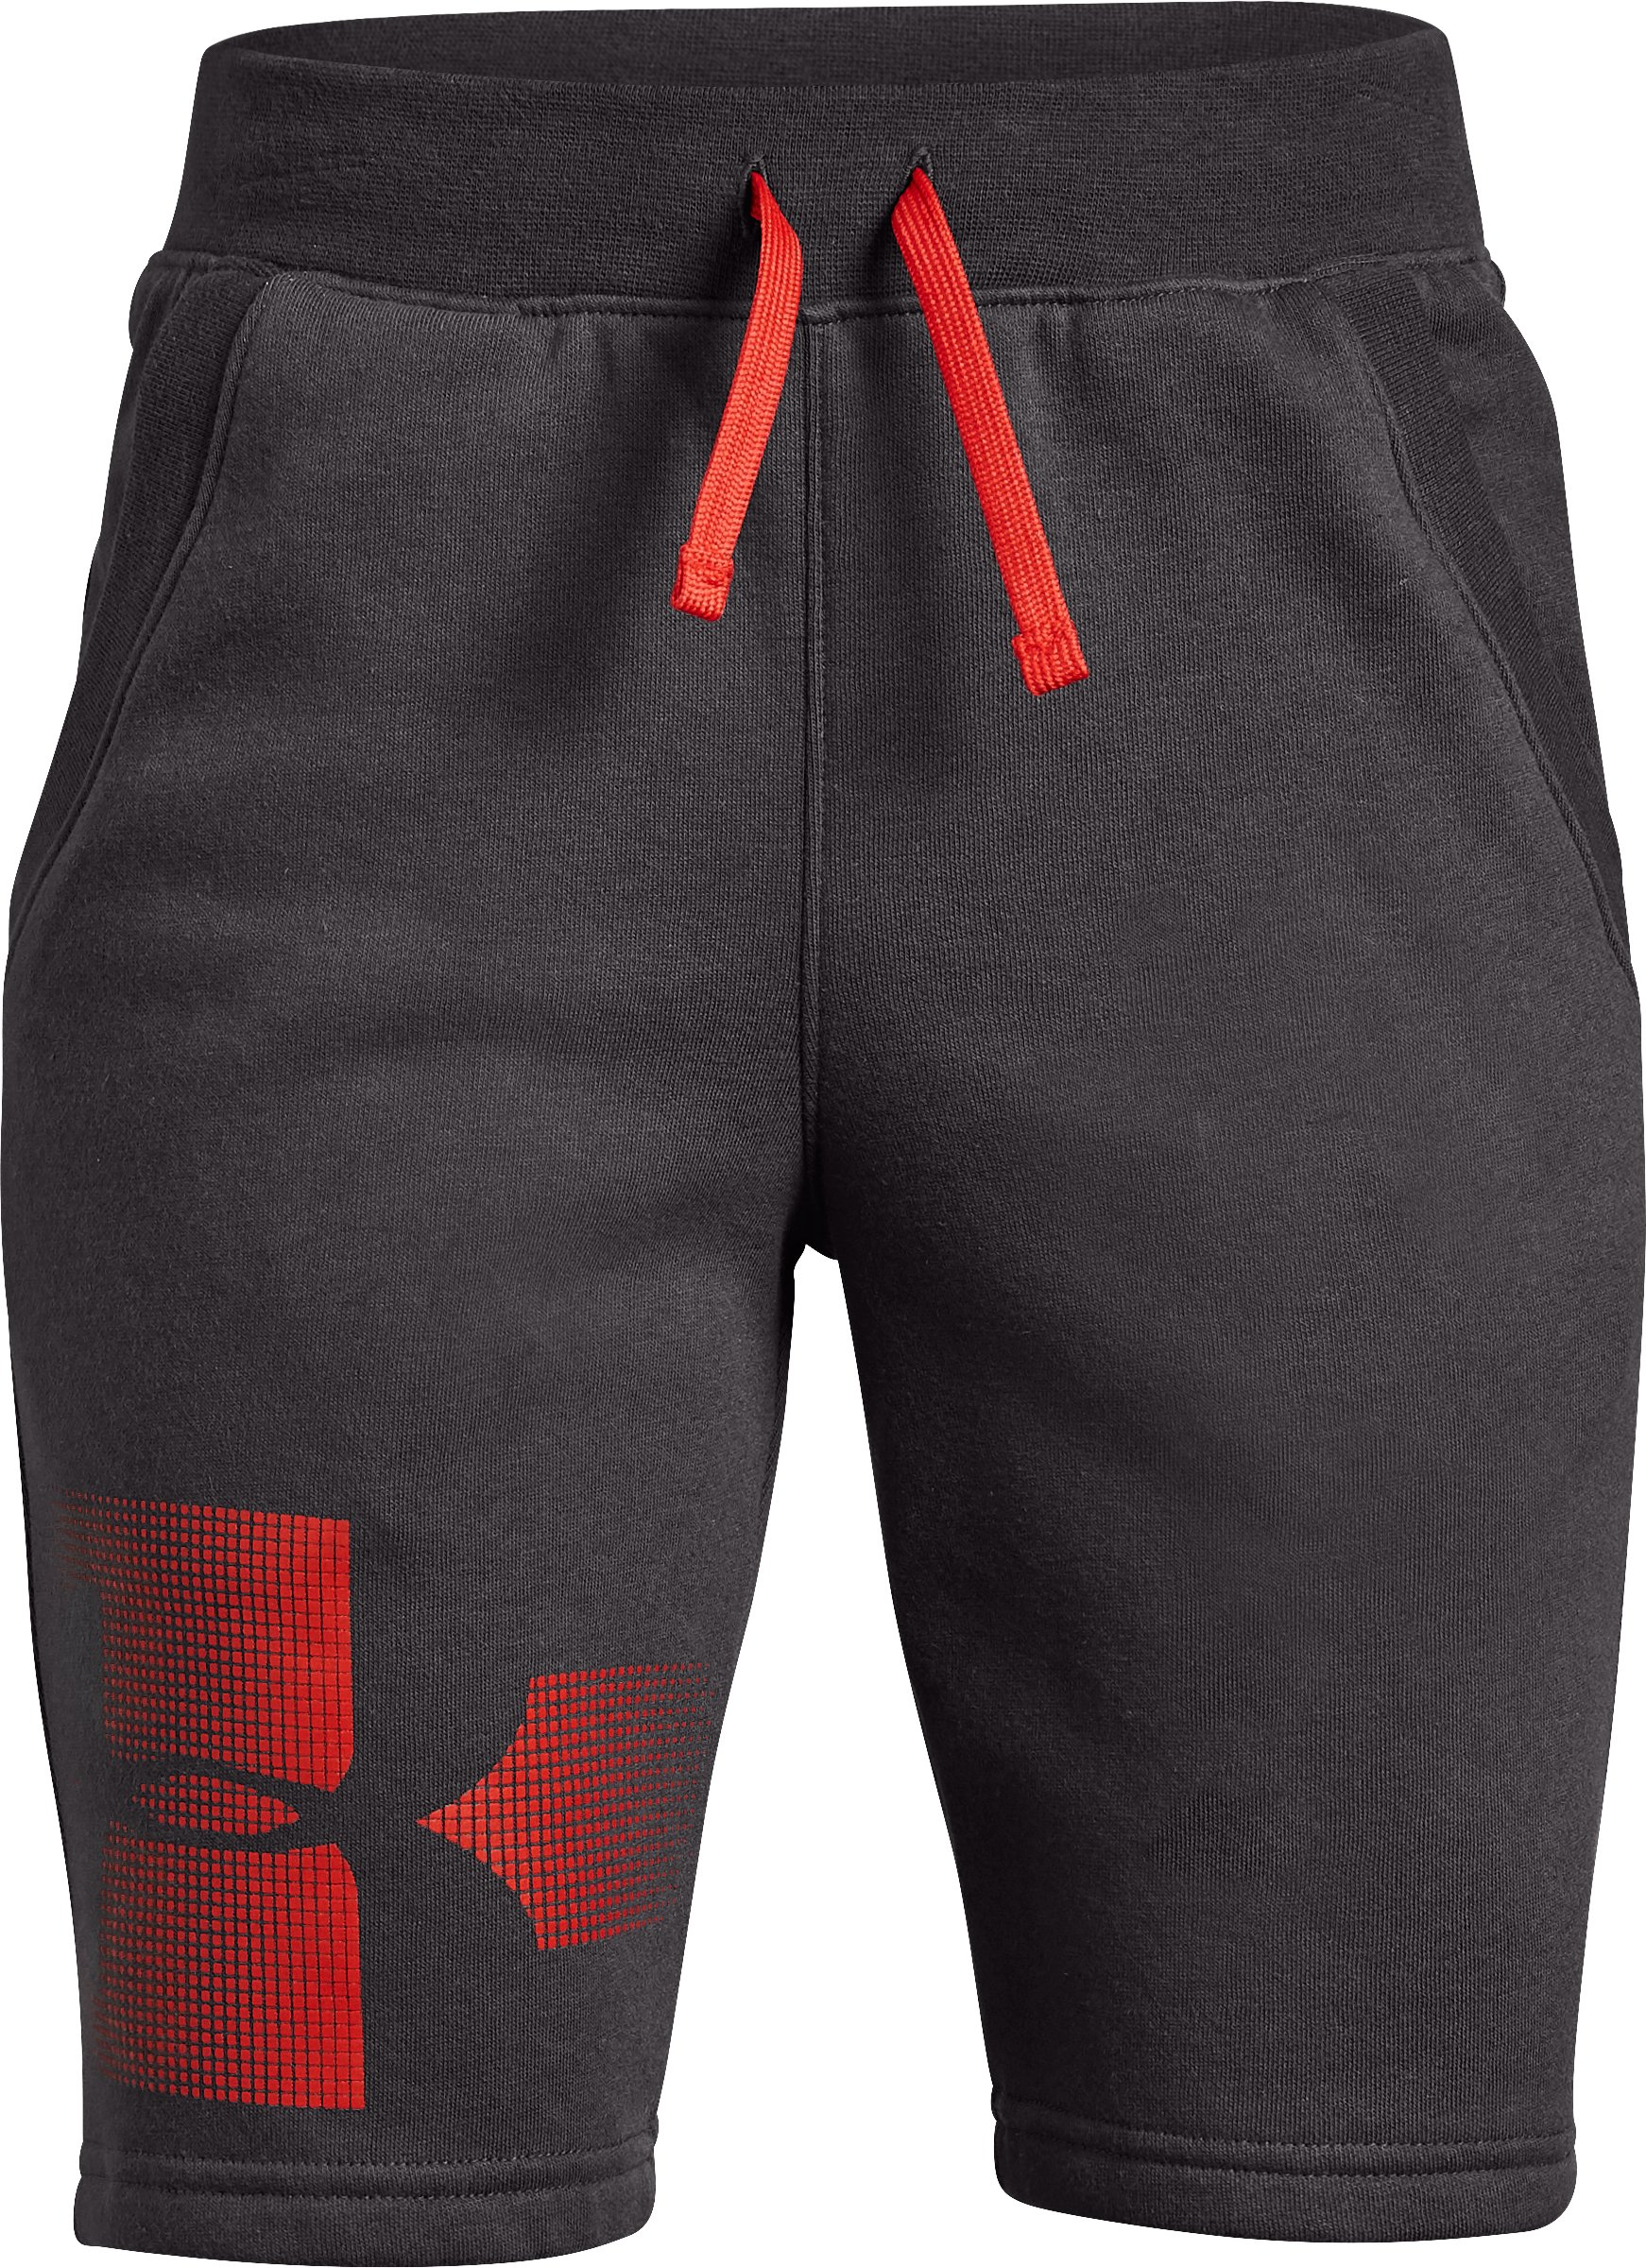 Rival Graphic Fleece Short, Charcoal, zoomed